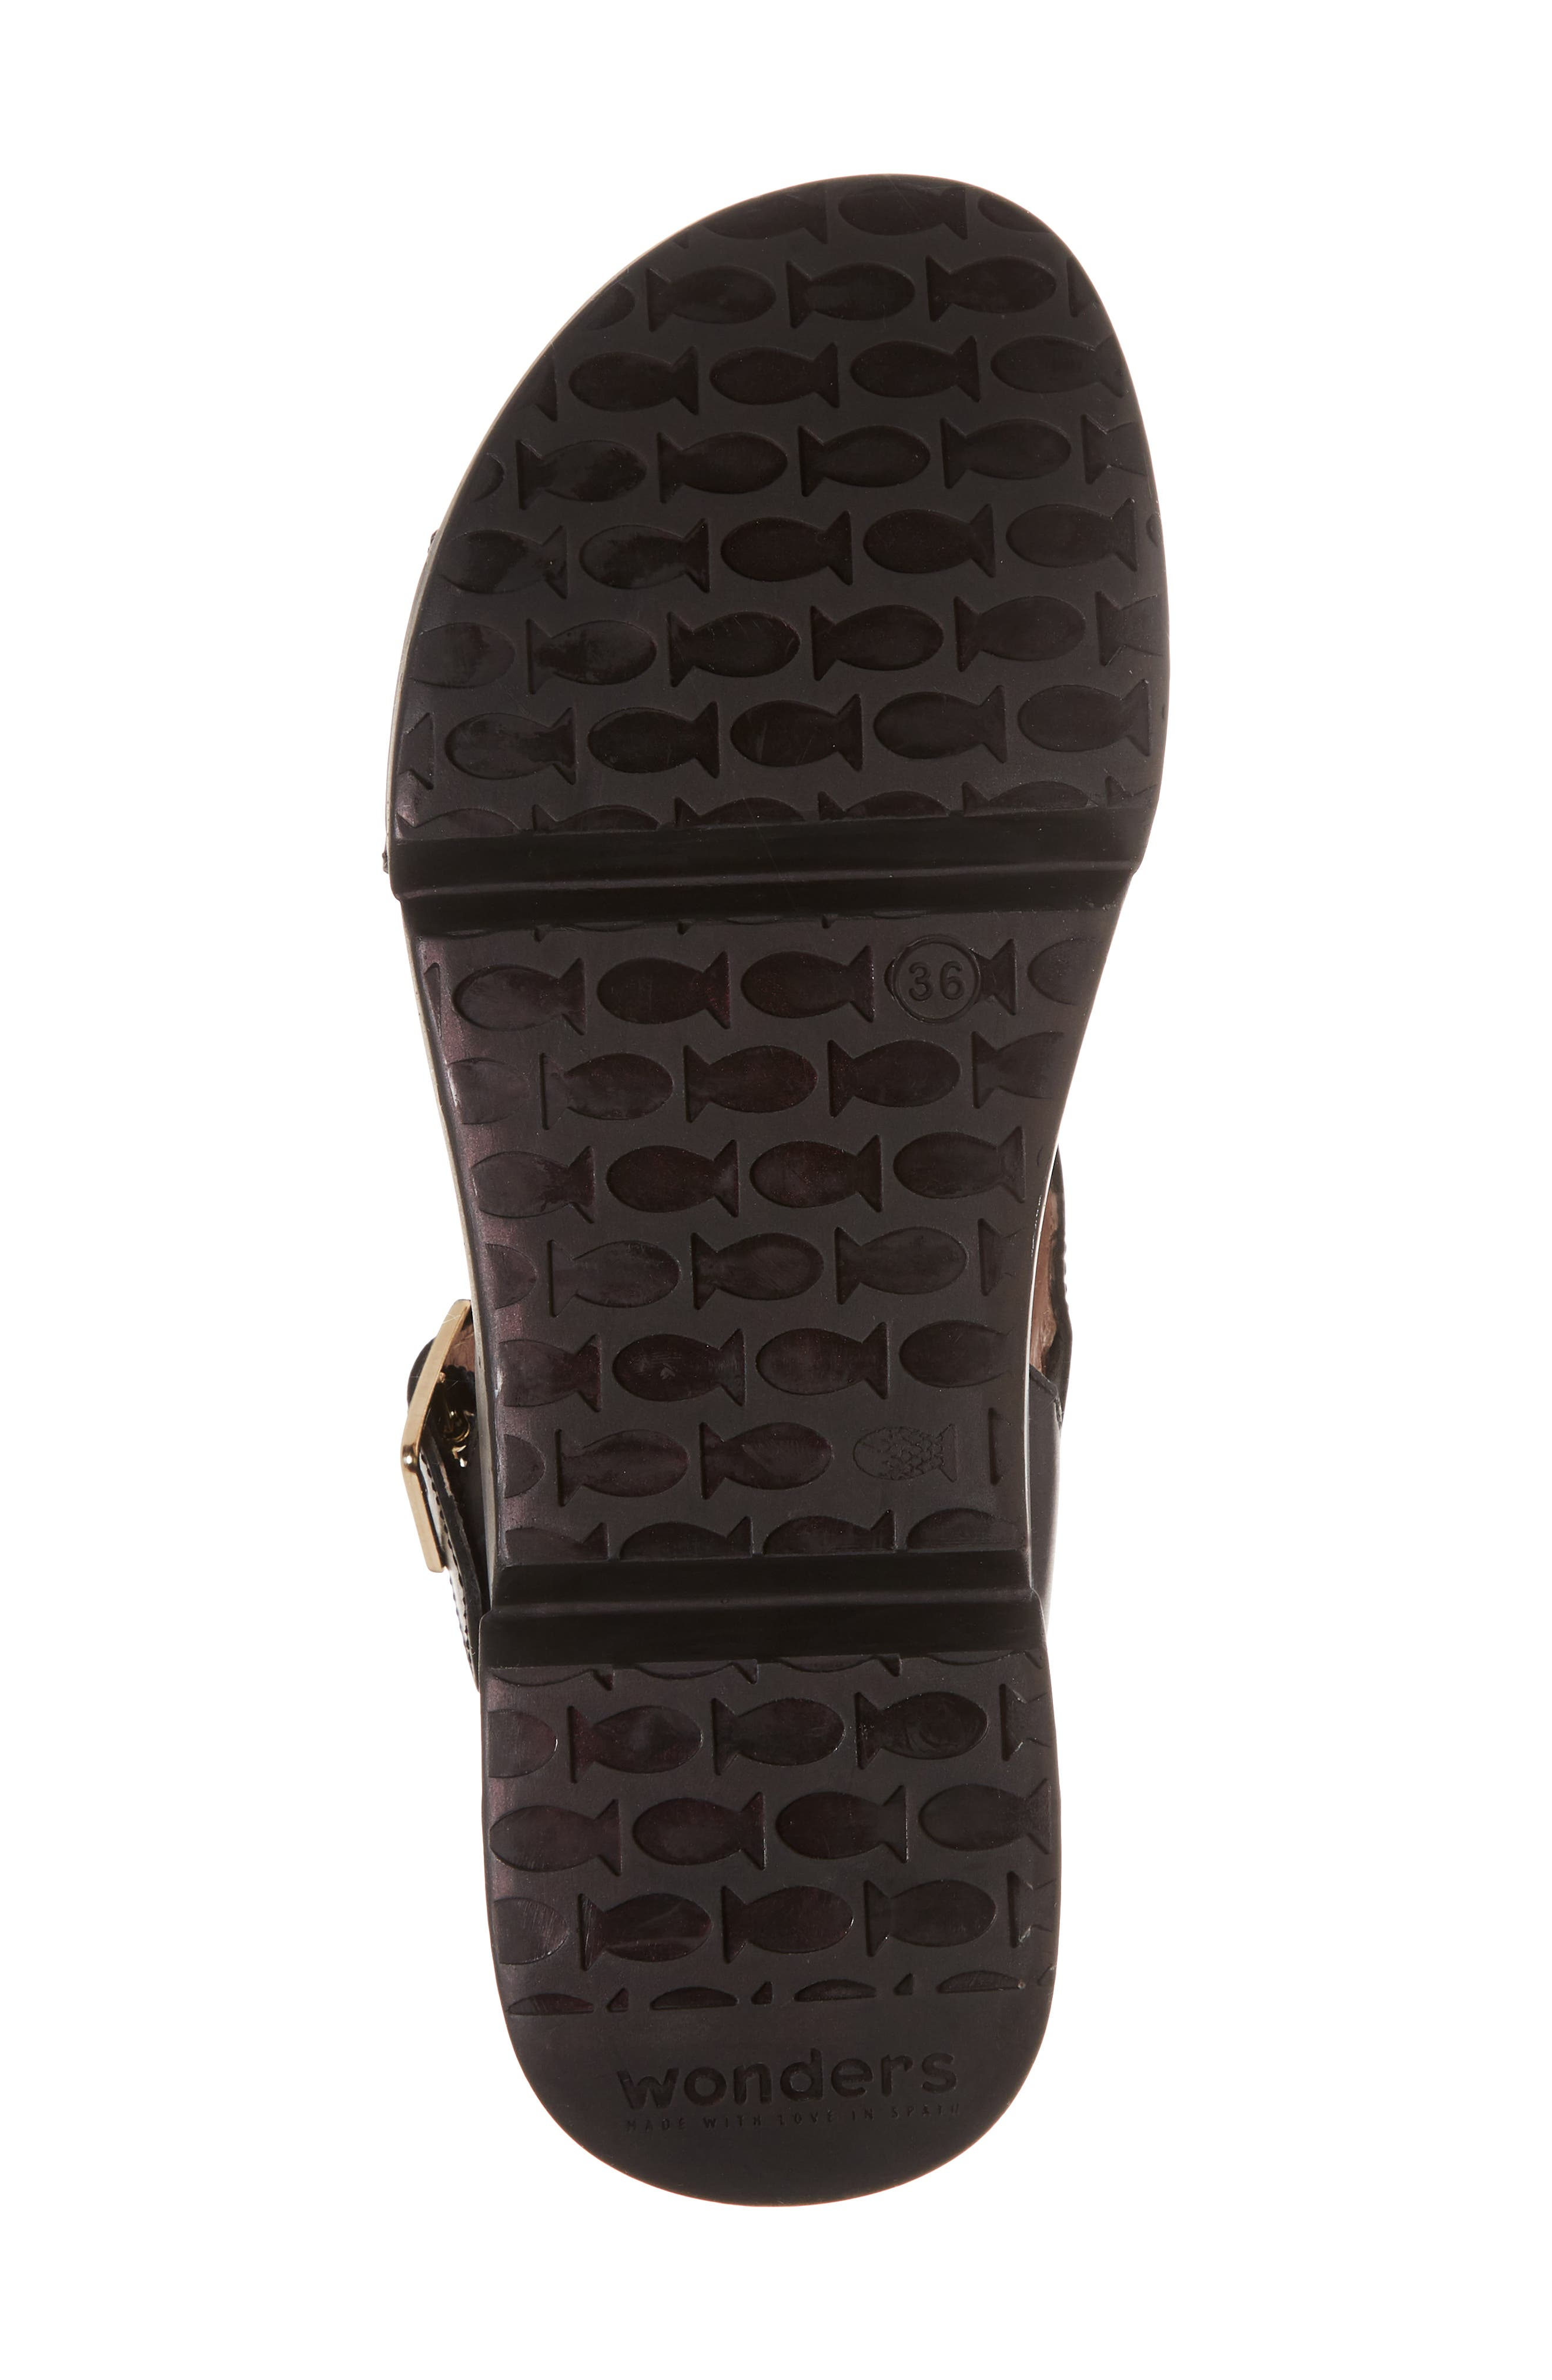 Platform Wedge Sandal,                             Alternate thumbnail 6, color,                             BLACK LEATHER